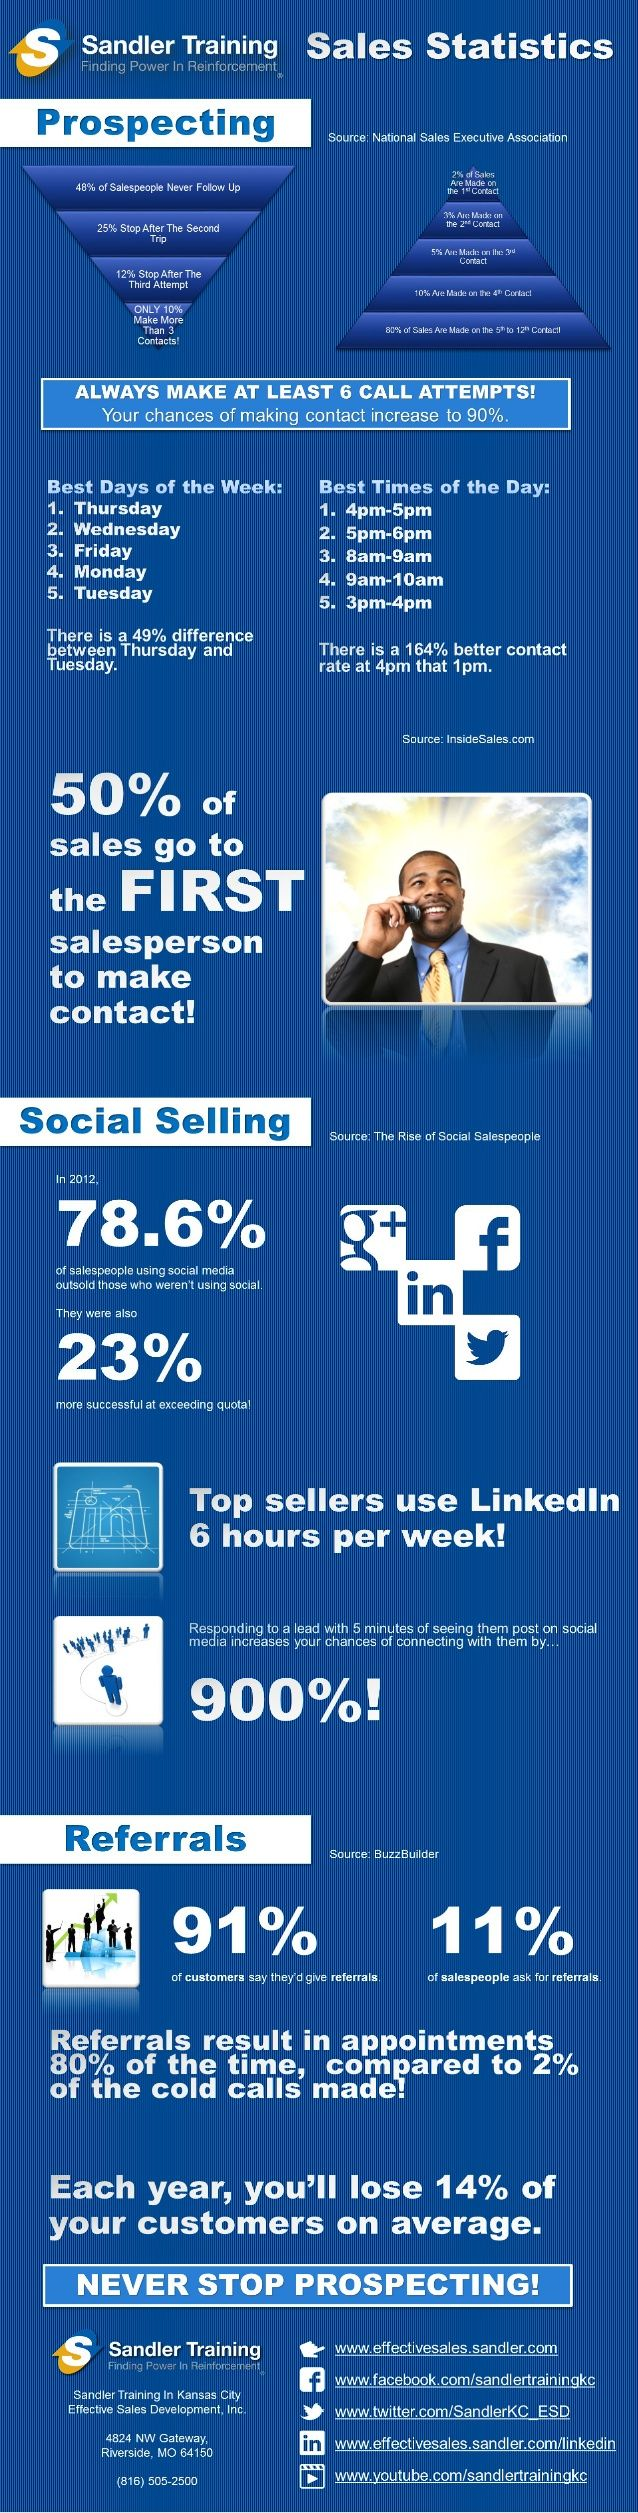 Staggering Sales Stats By Sandler Training Kansas City Sales